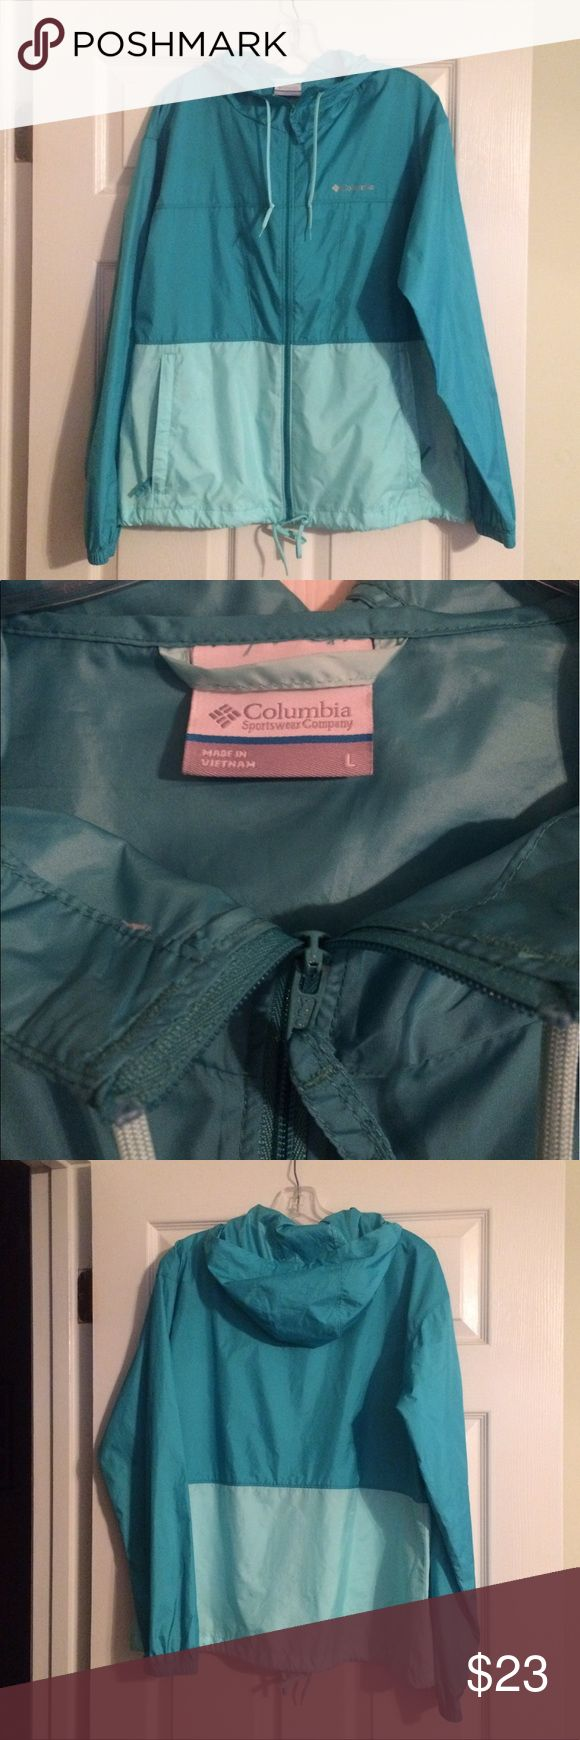 Columbia lightweight rain jacket Columbia lightweight rain slicker in excellent condition! Zippered front with 2 zippered pockets and an adjustable collar and hood. Two toned shades of green. Size large. Columbia Jackets & Coats